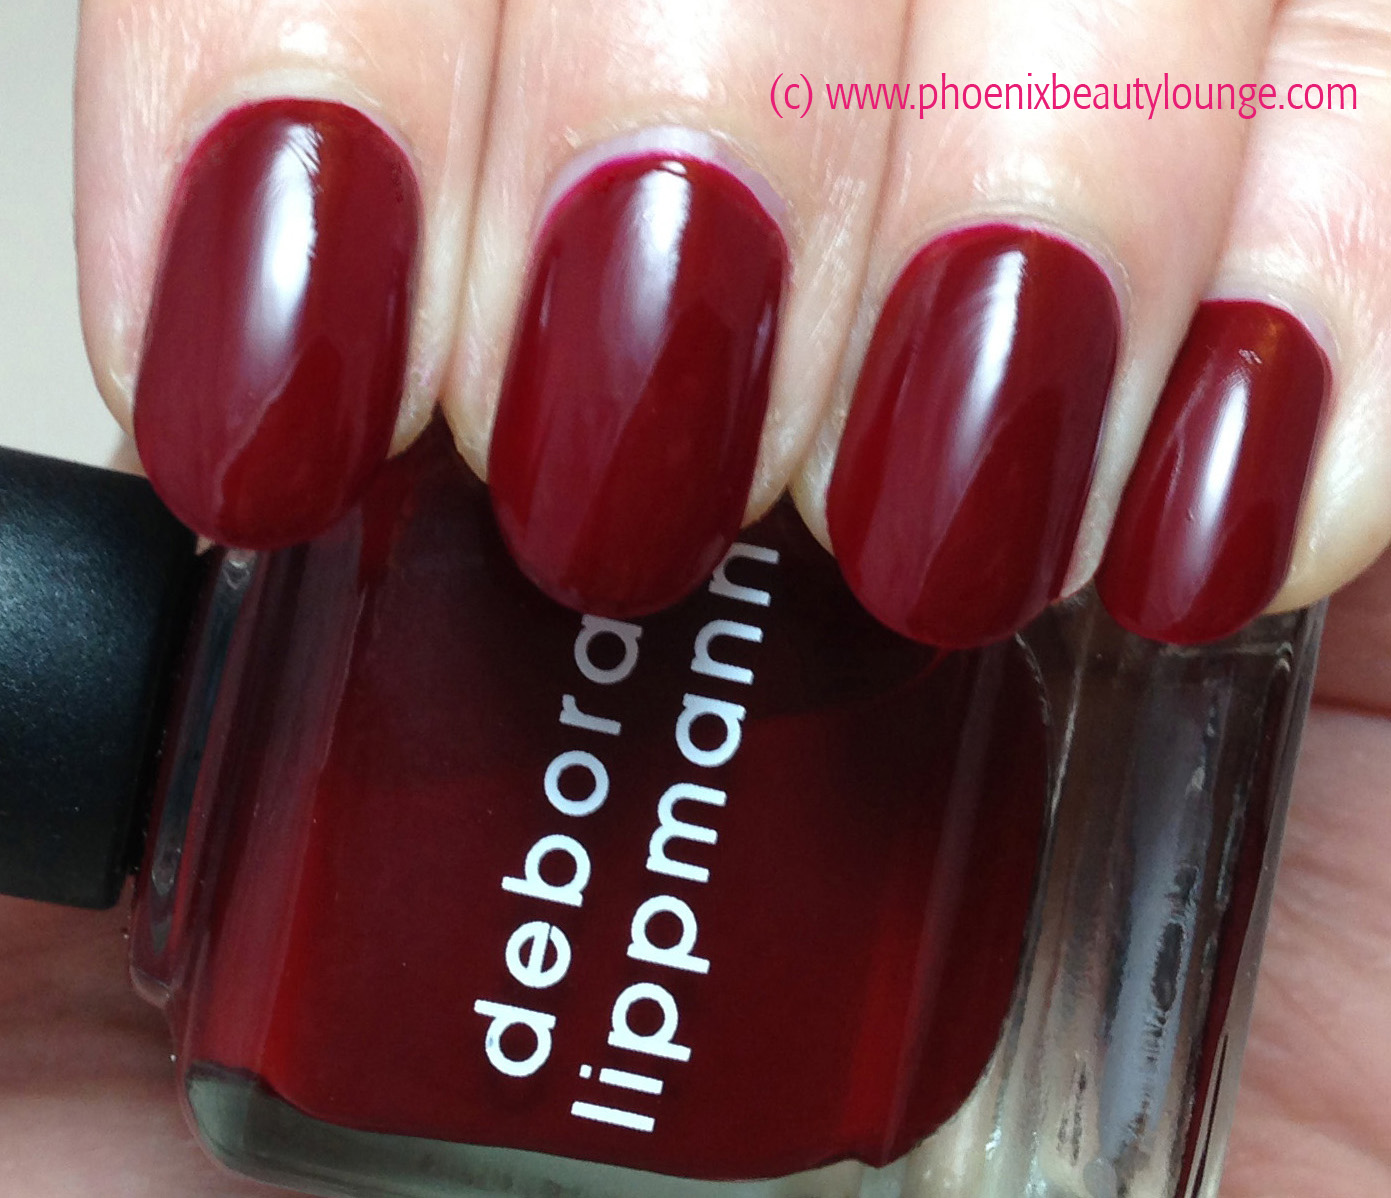 Deborah Lippmann Lady is a Tramp | Phoenix Beauty Lounge